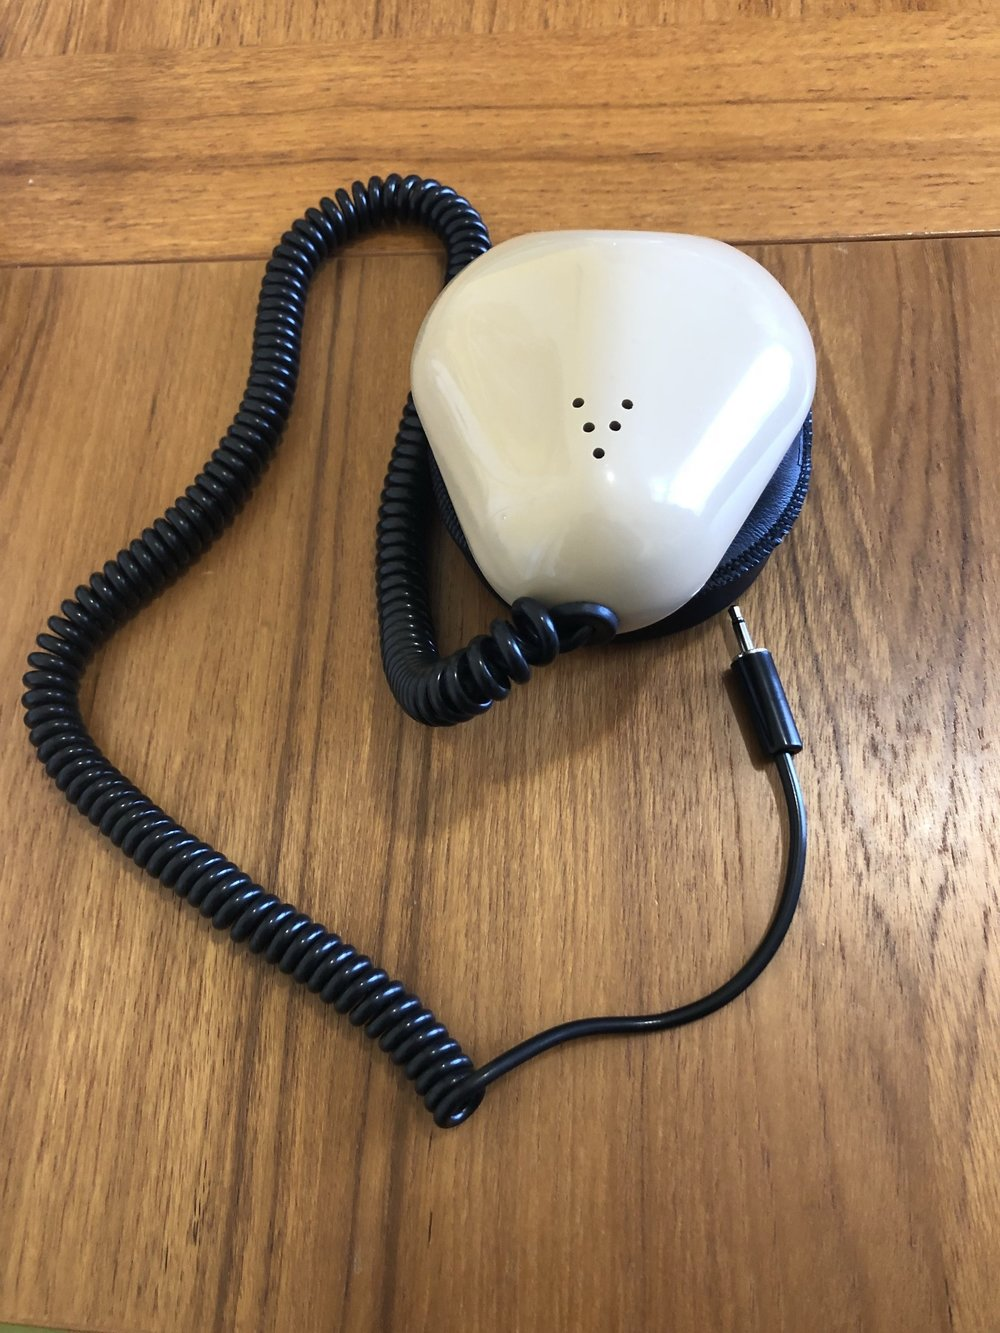 [A 'stenographer's mask' rests on a table it is a mouth sized metal case  containing a microphone with a flexible seal that fits around the mouth. A small microphone cable is attached.]